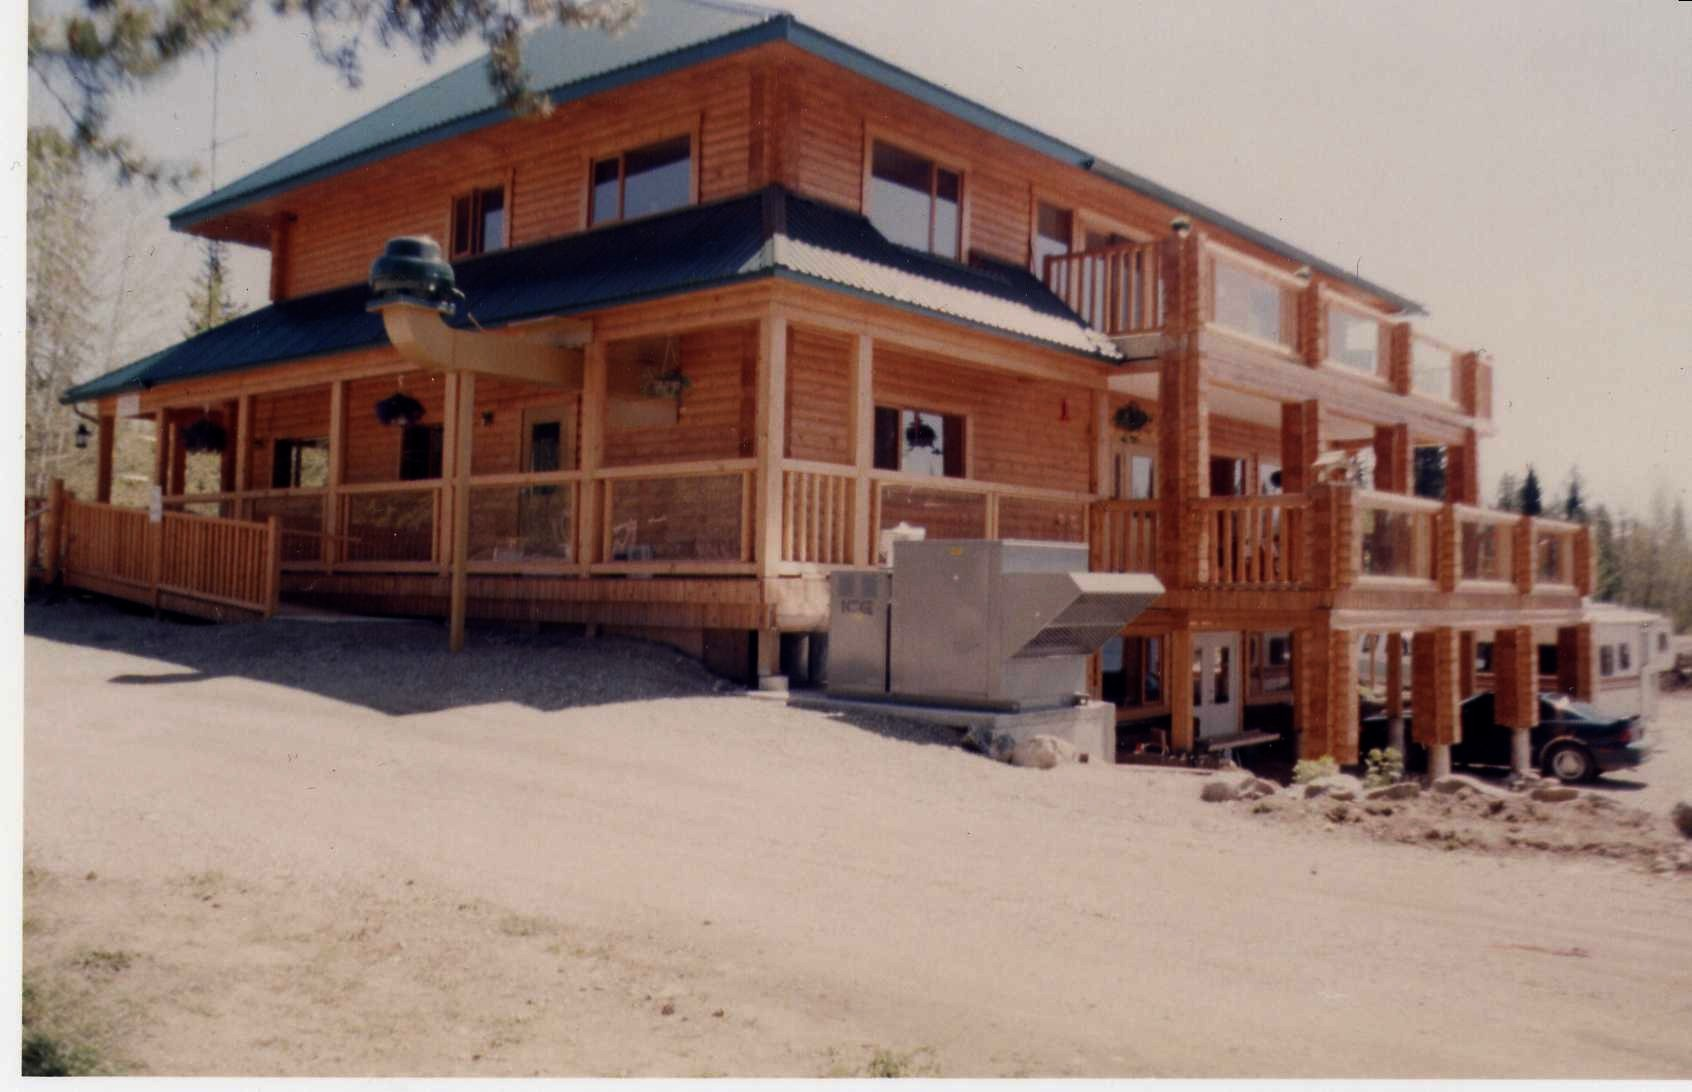 Two storey with wrap-around porches & open decks